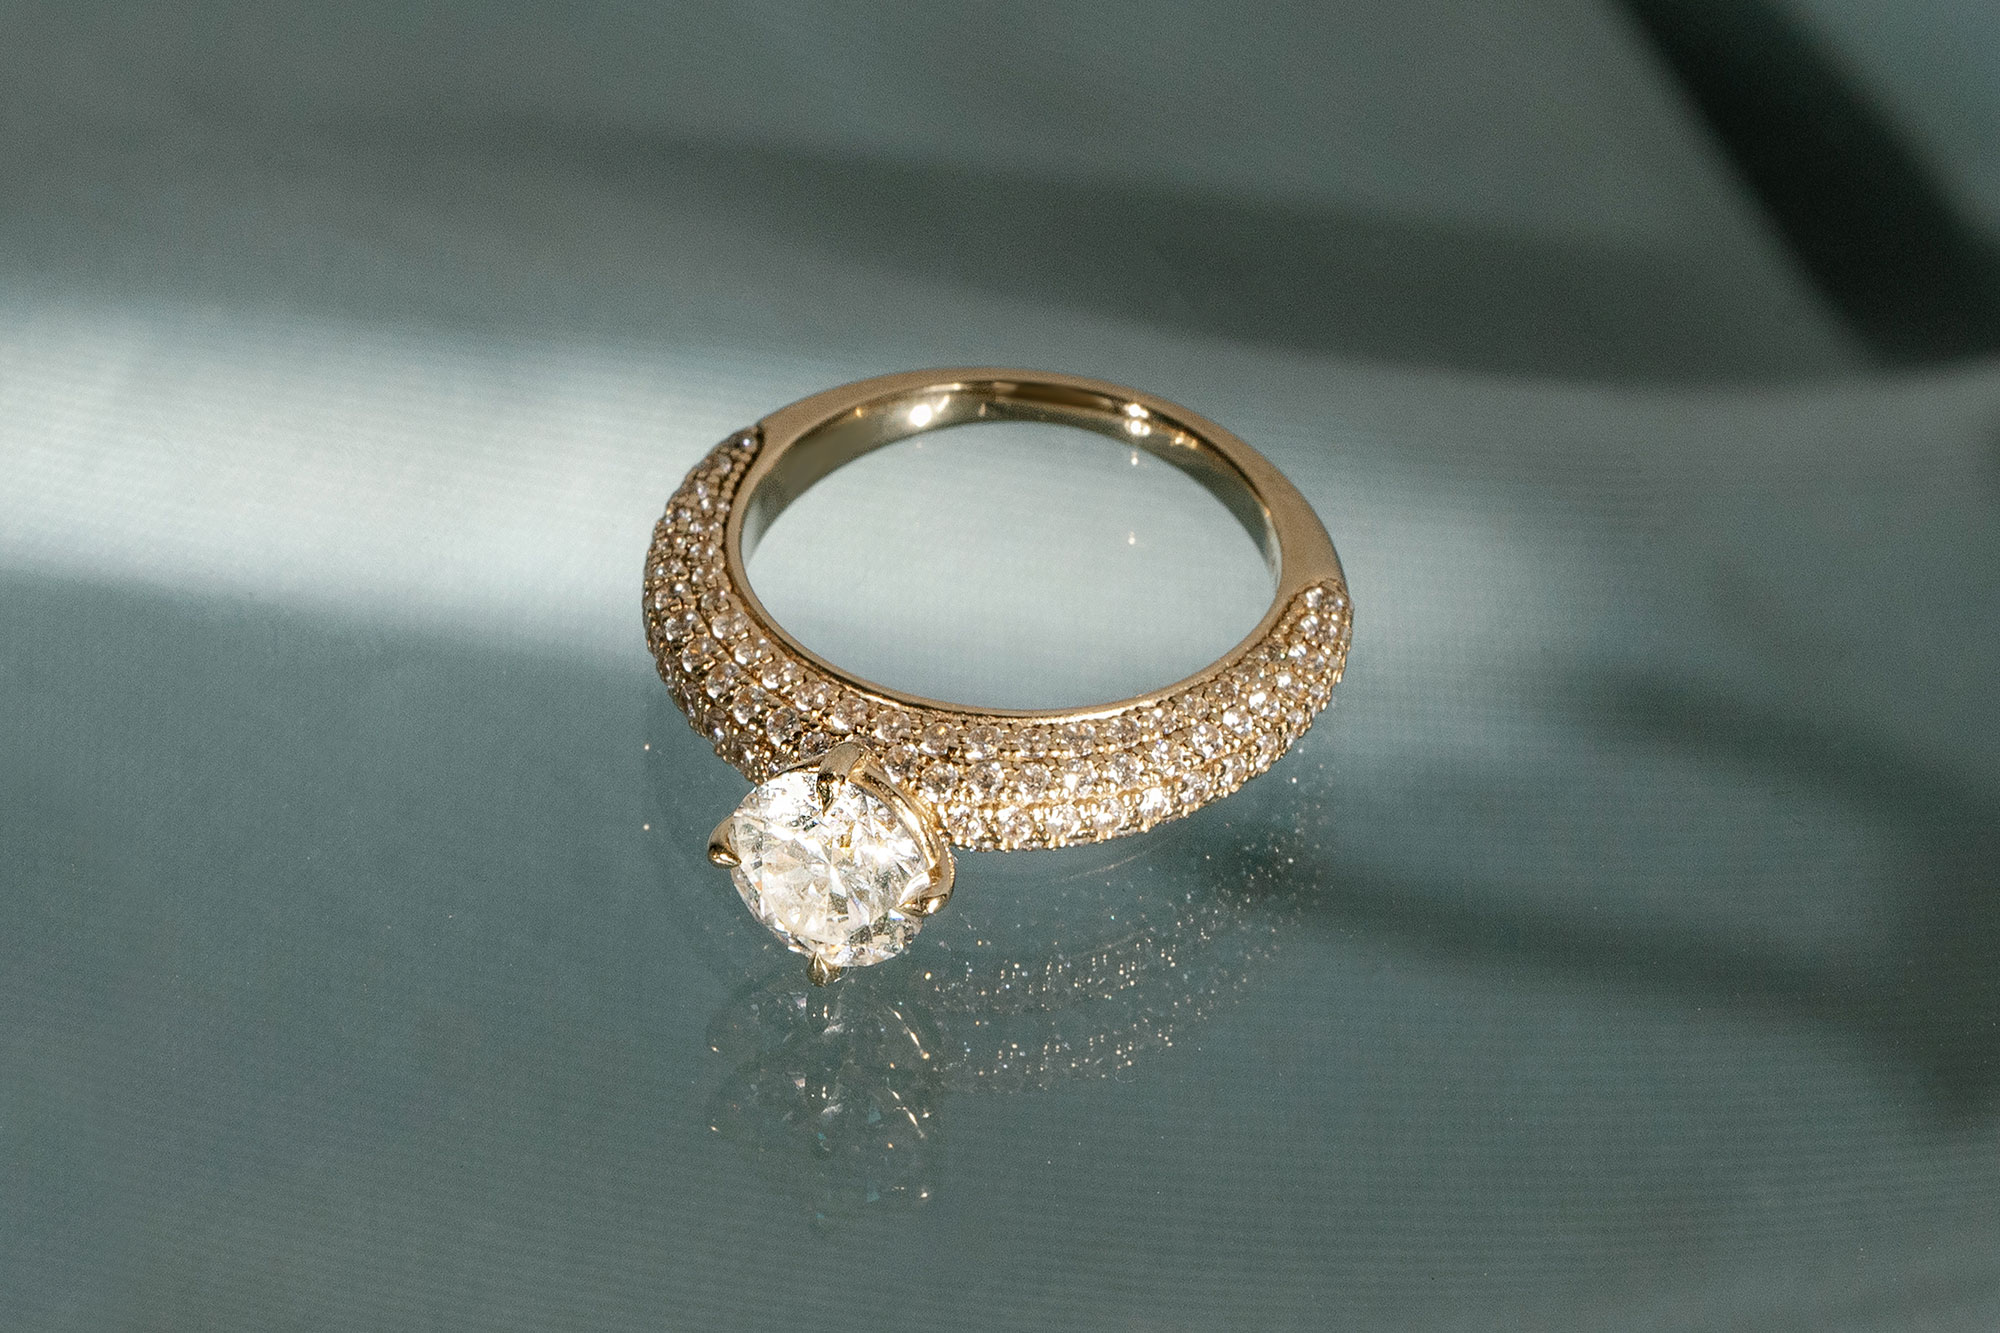 the round brilliant curator engagement ring with yellow gold pave band